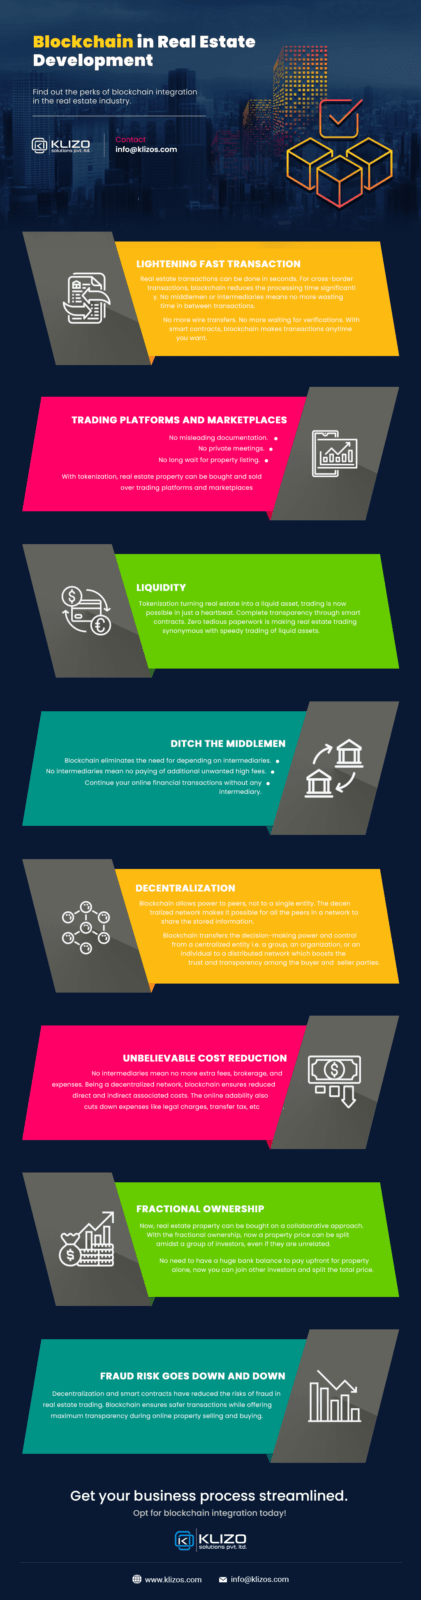 blockchain in real estate - INFOGRAPHIC